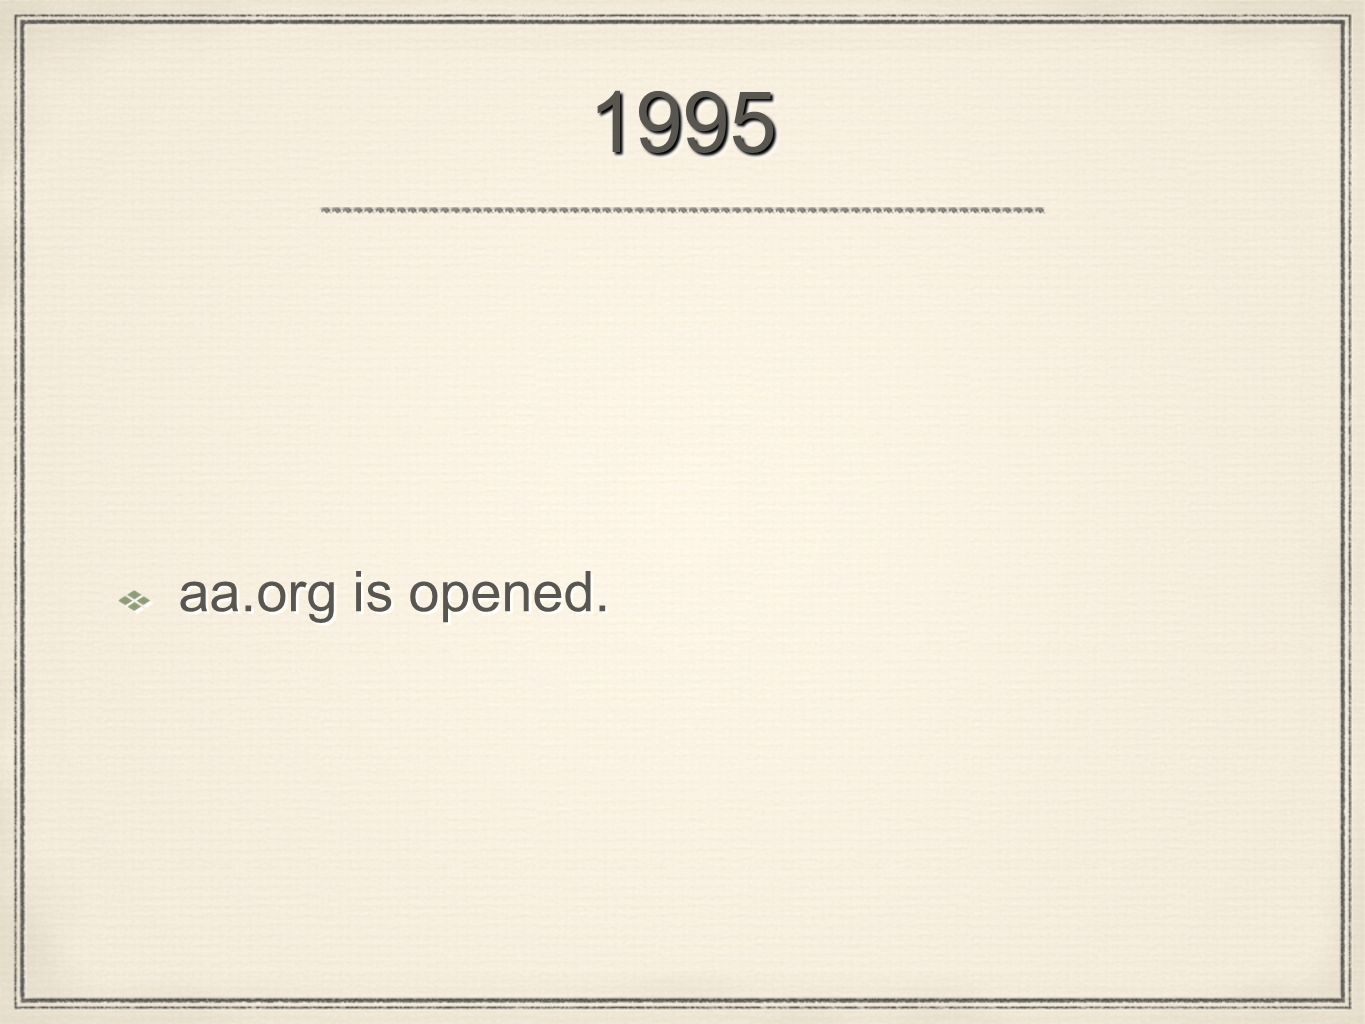 19951995 aa.org is opened.